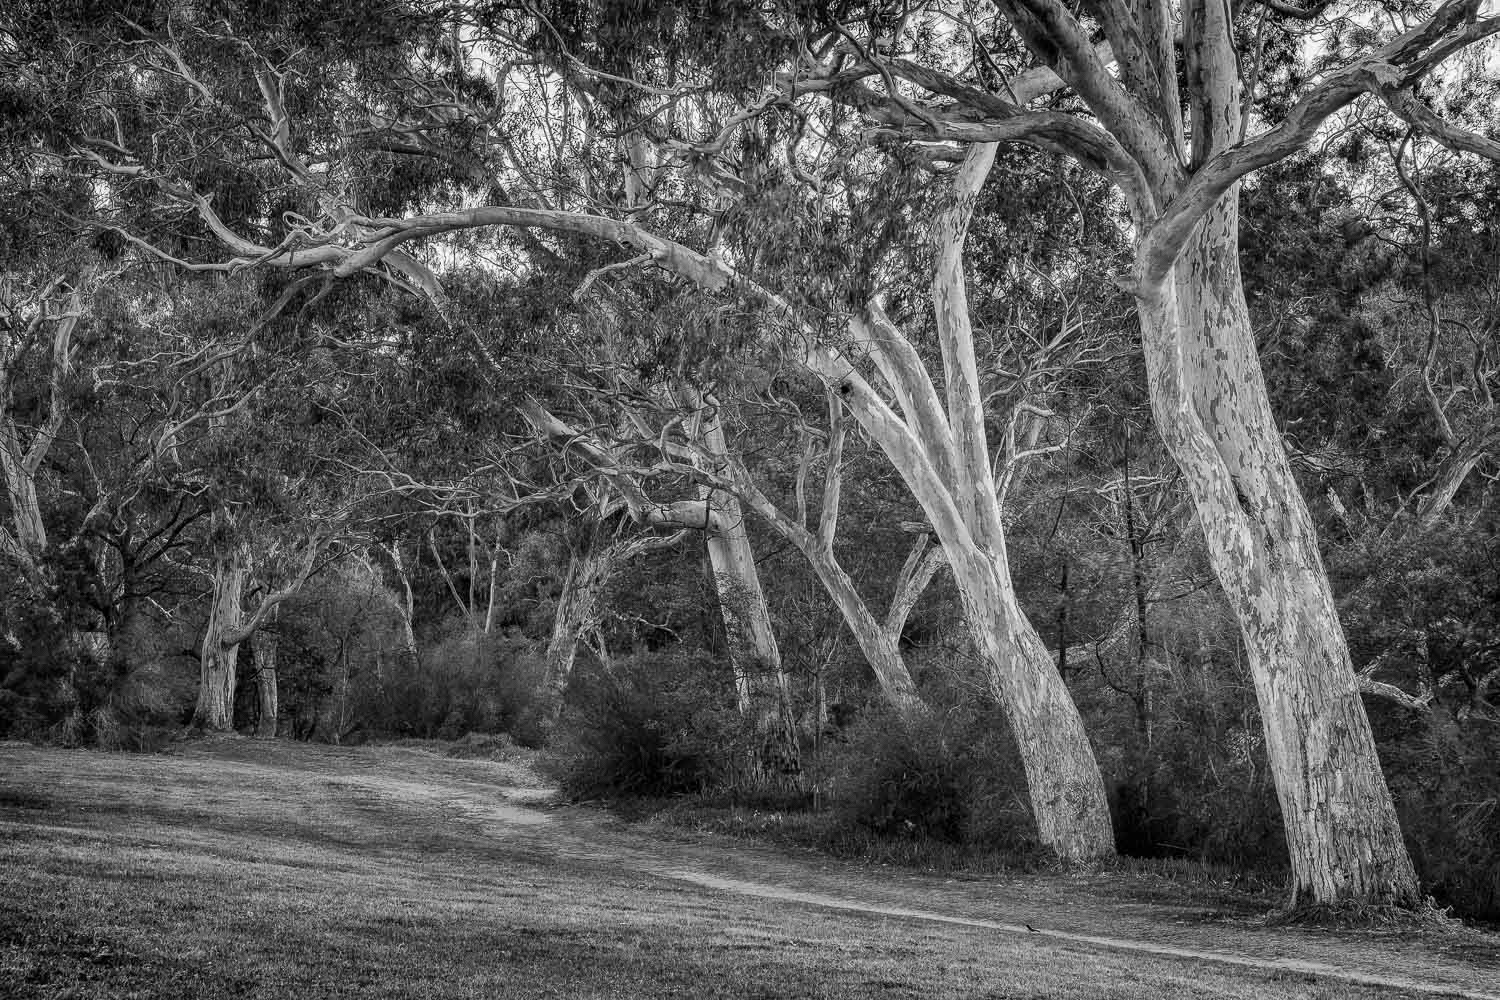 Trees alongside the  Yarra River  just off Yarra Bend Road in  Fairfield , a suburb of Melbourne, Australia.